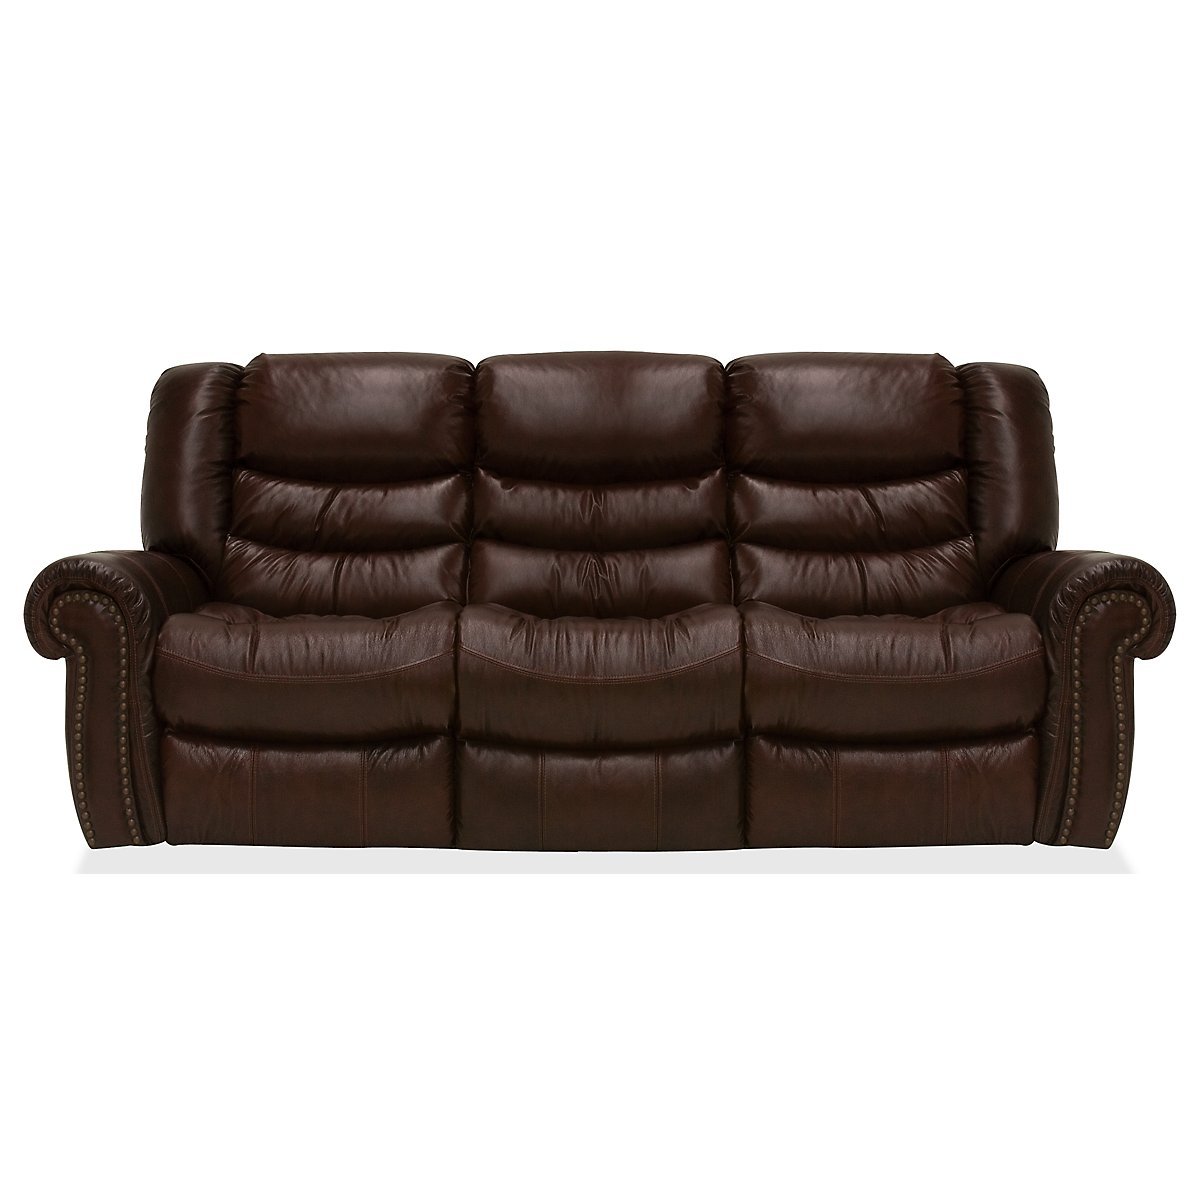 Peyton2 Dark Brown Leather & Vinyl Reclining Sofa